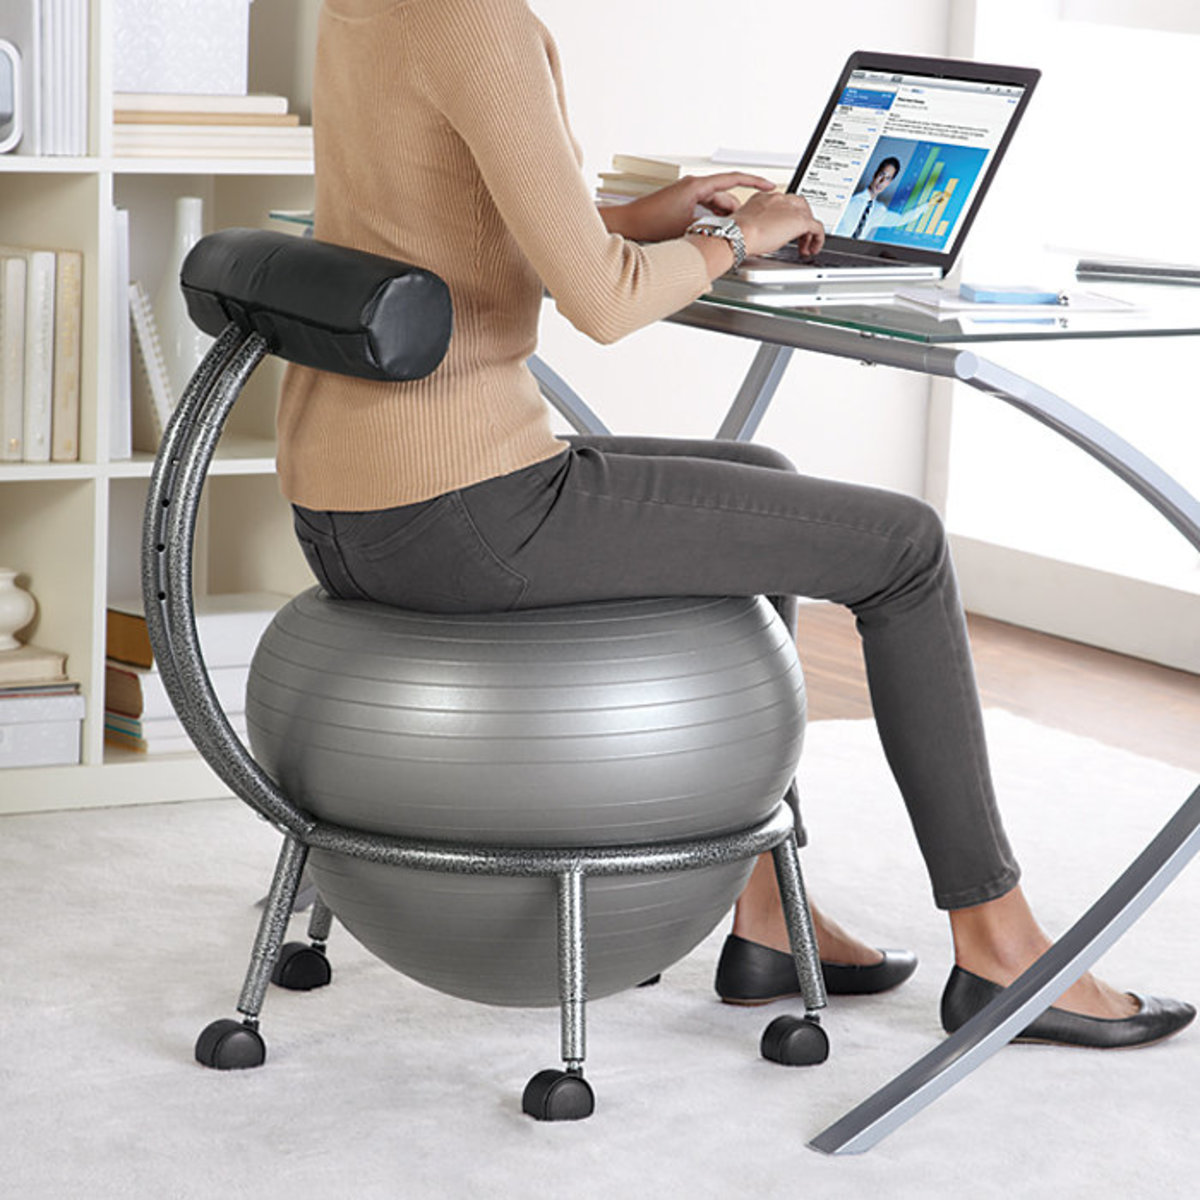 Cool and Useful Products: Home Office